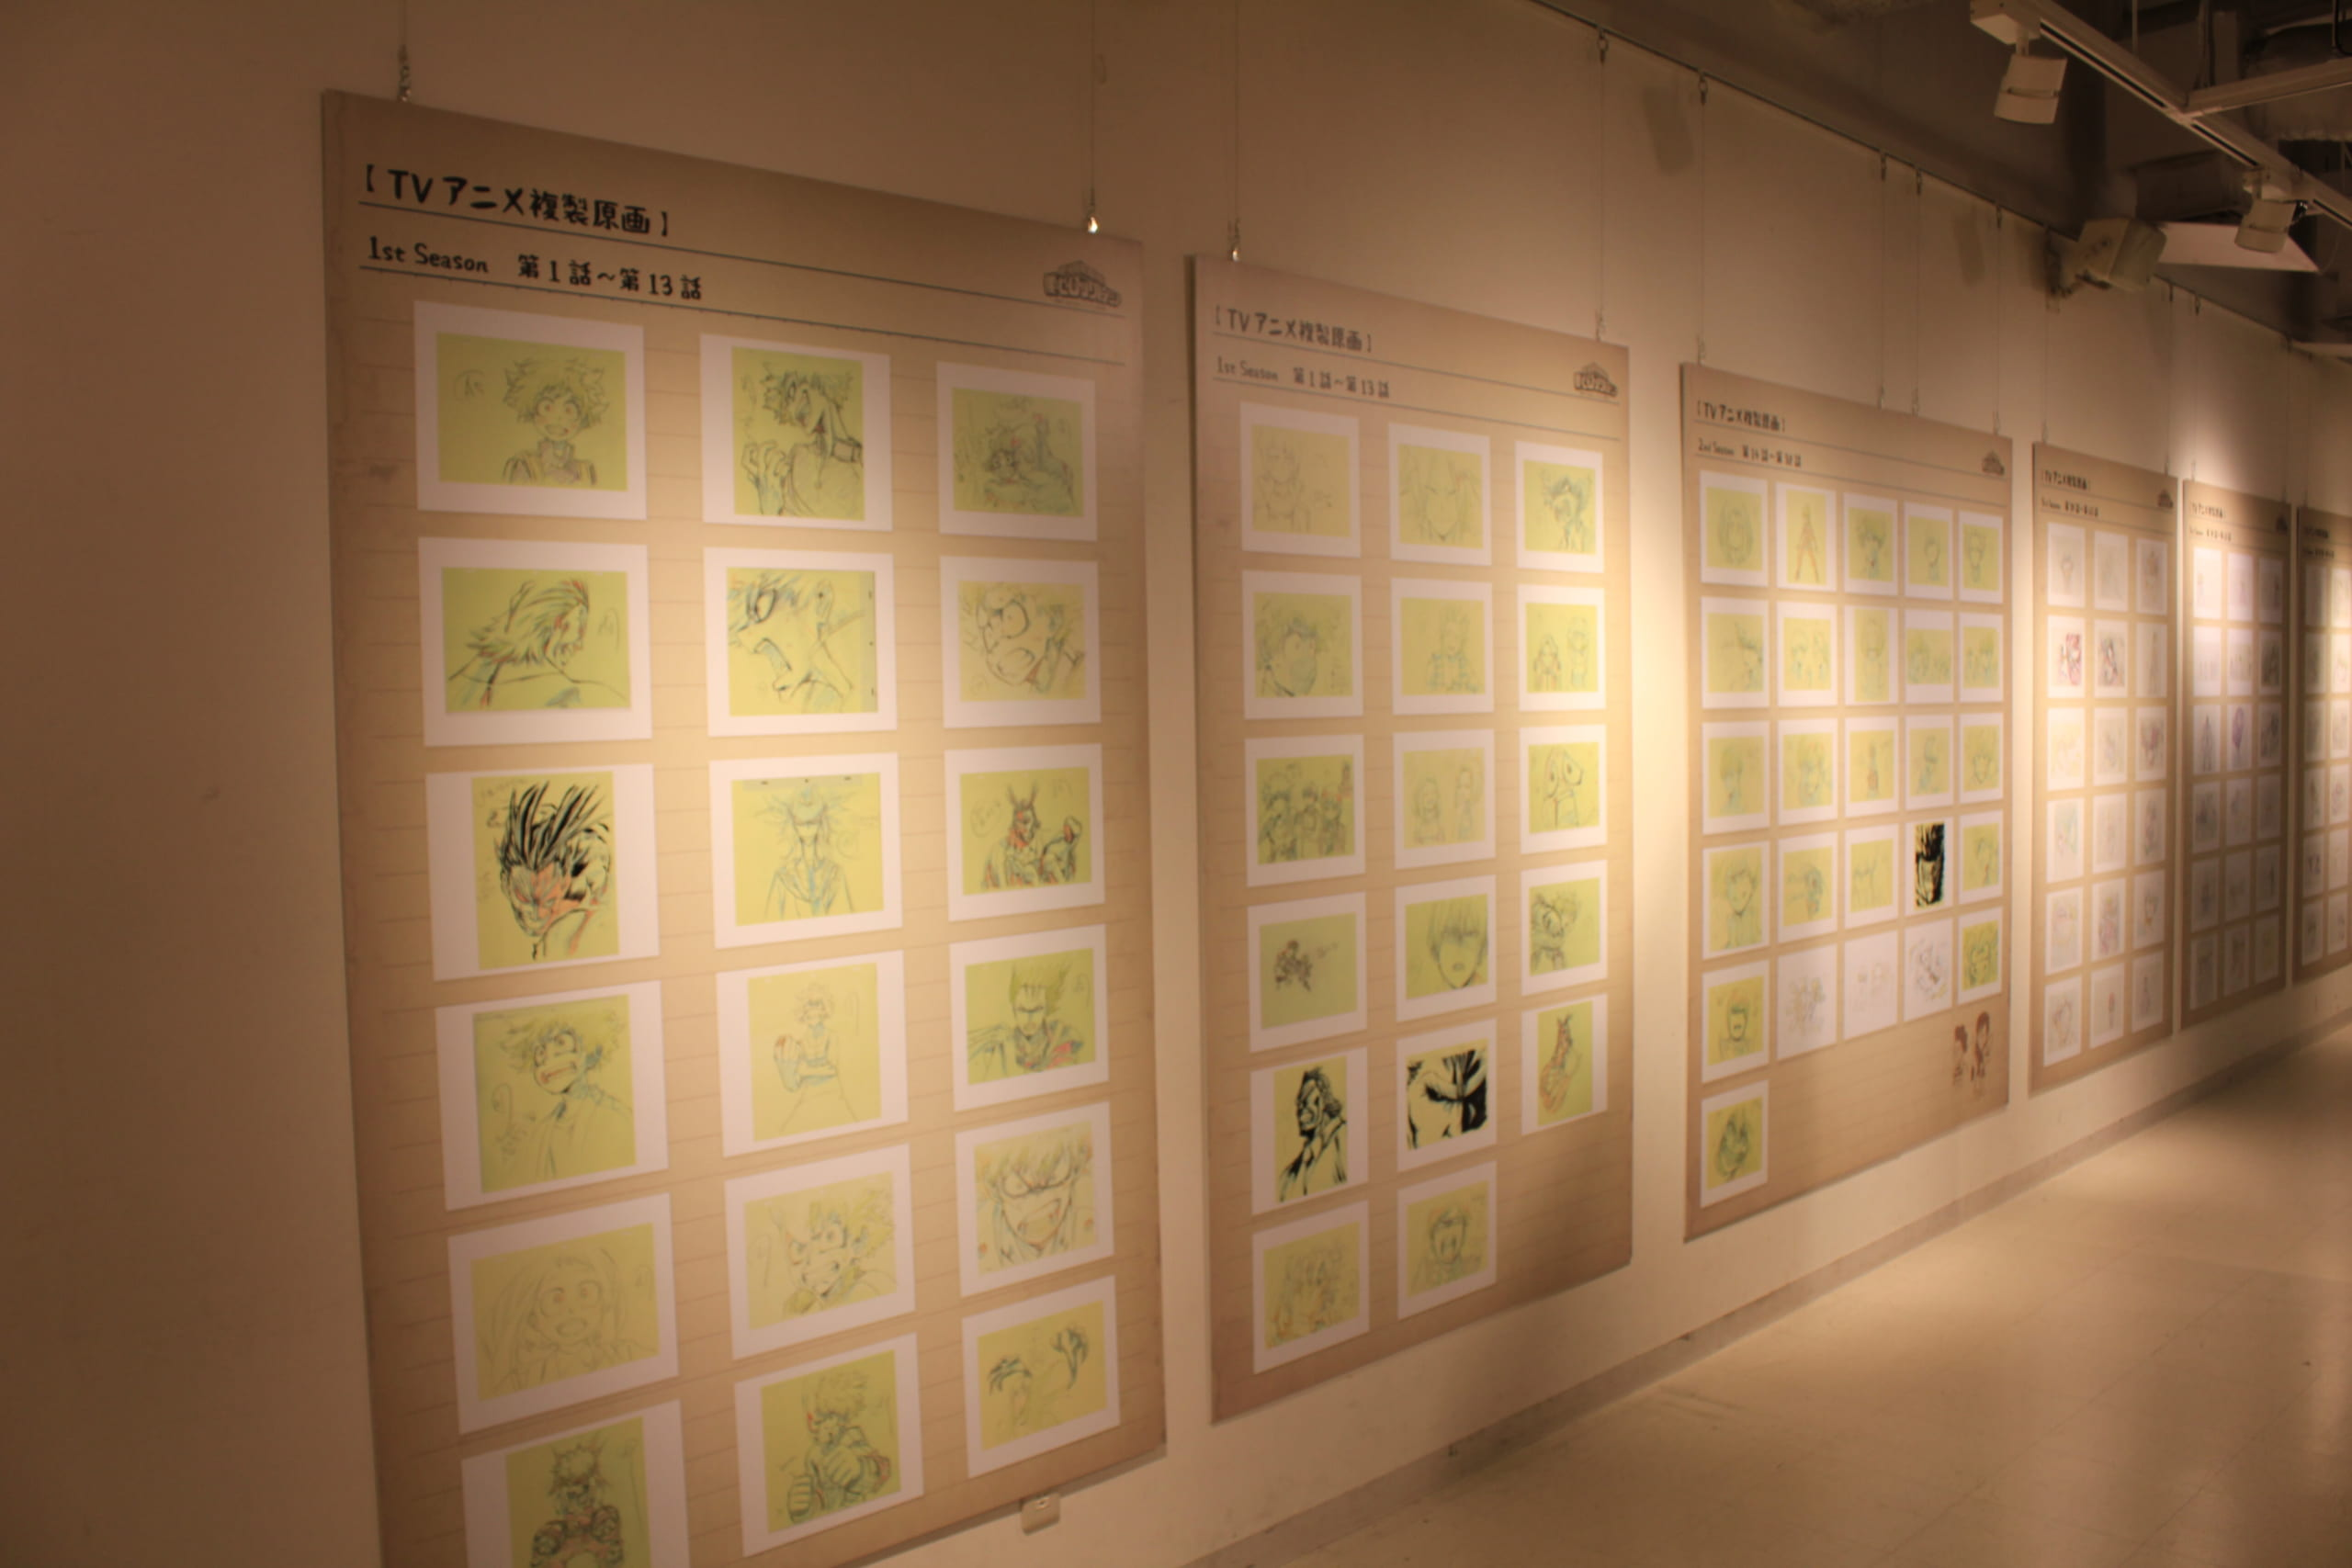 MHA Exhibit